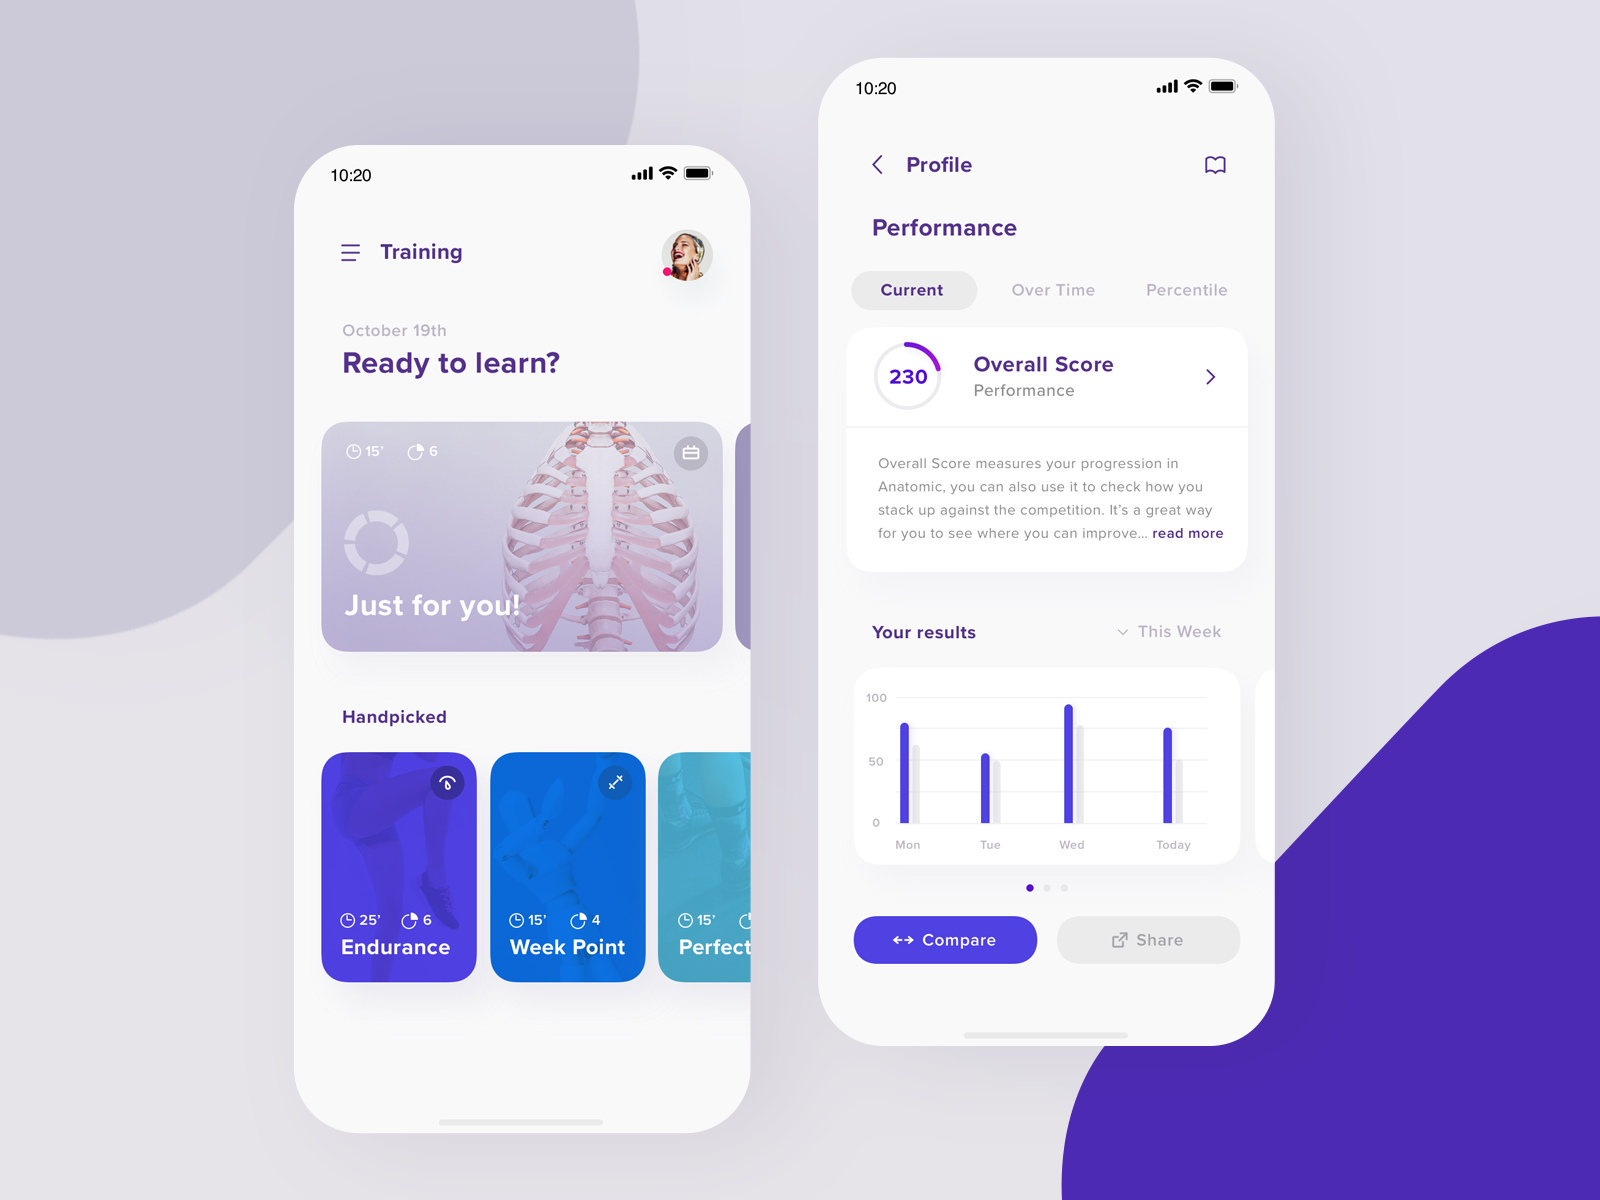 Anatomic Training Performance Uiapp App Ui Design Ui